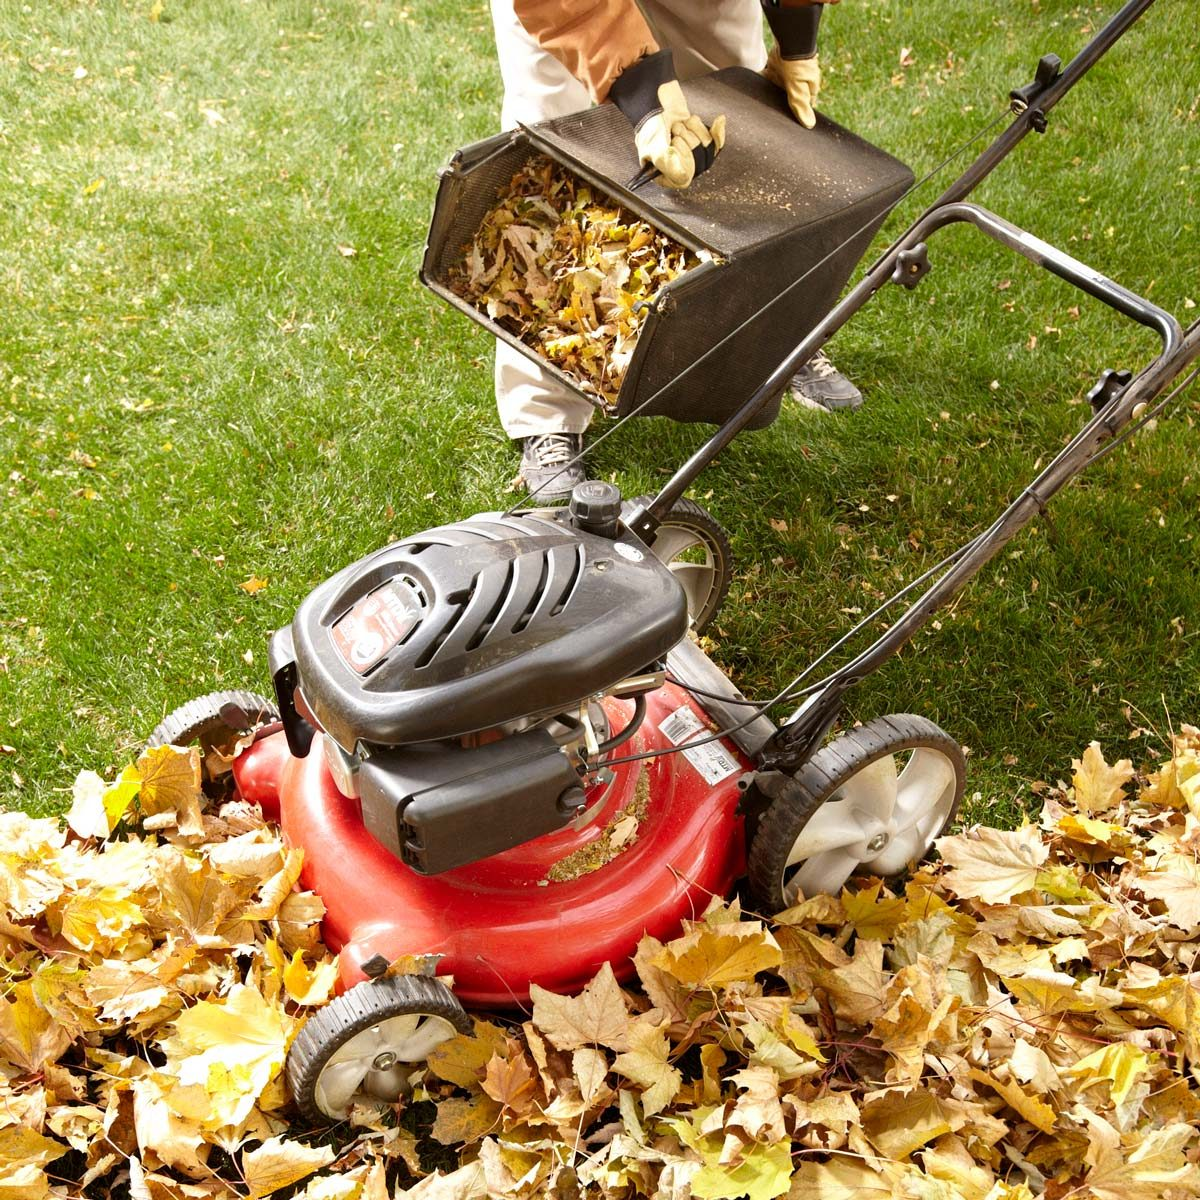 Stand Ride On Leaf Blower Rental: 14 Tips For Dealing With Leaves Like A Pro